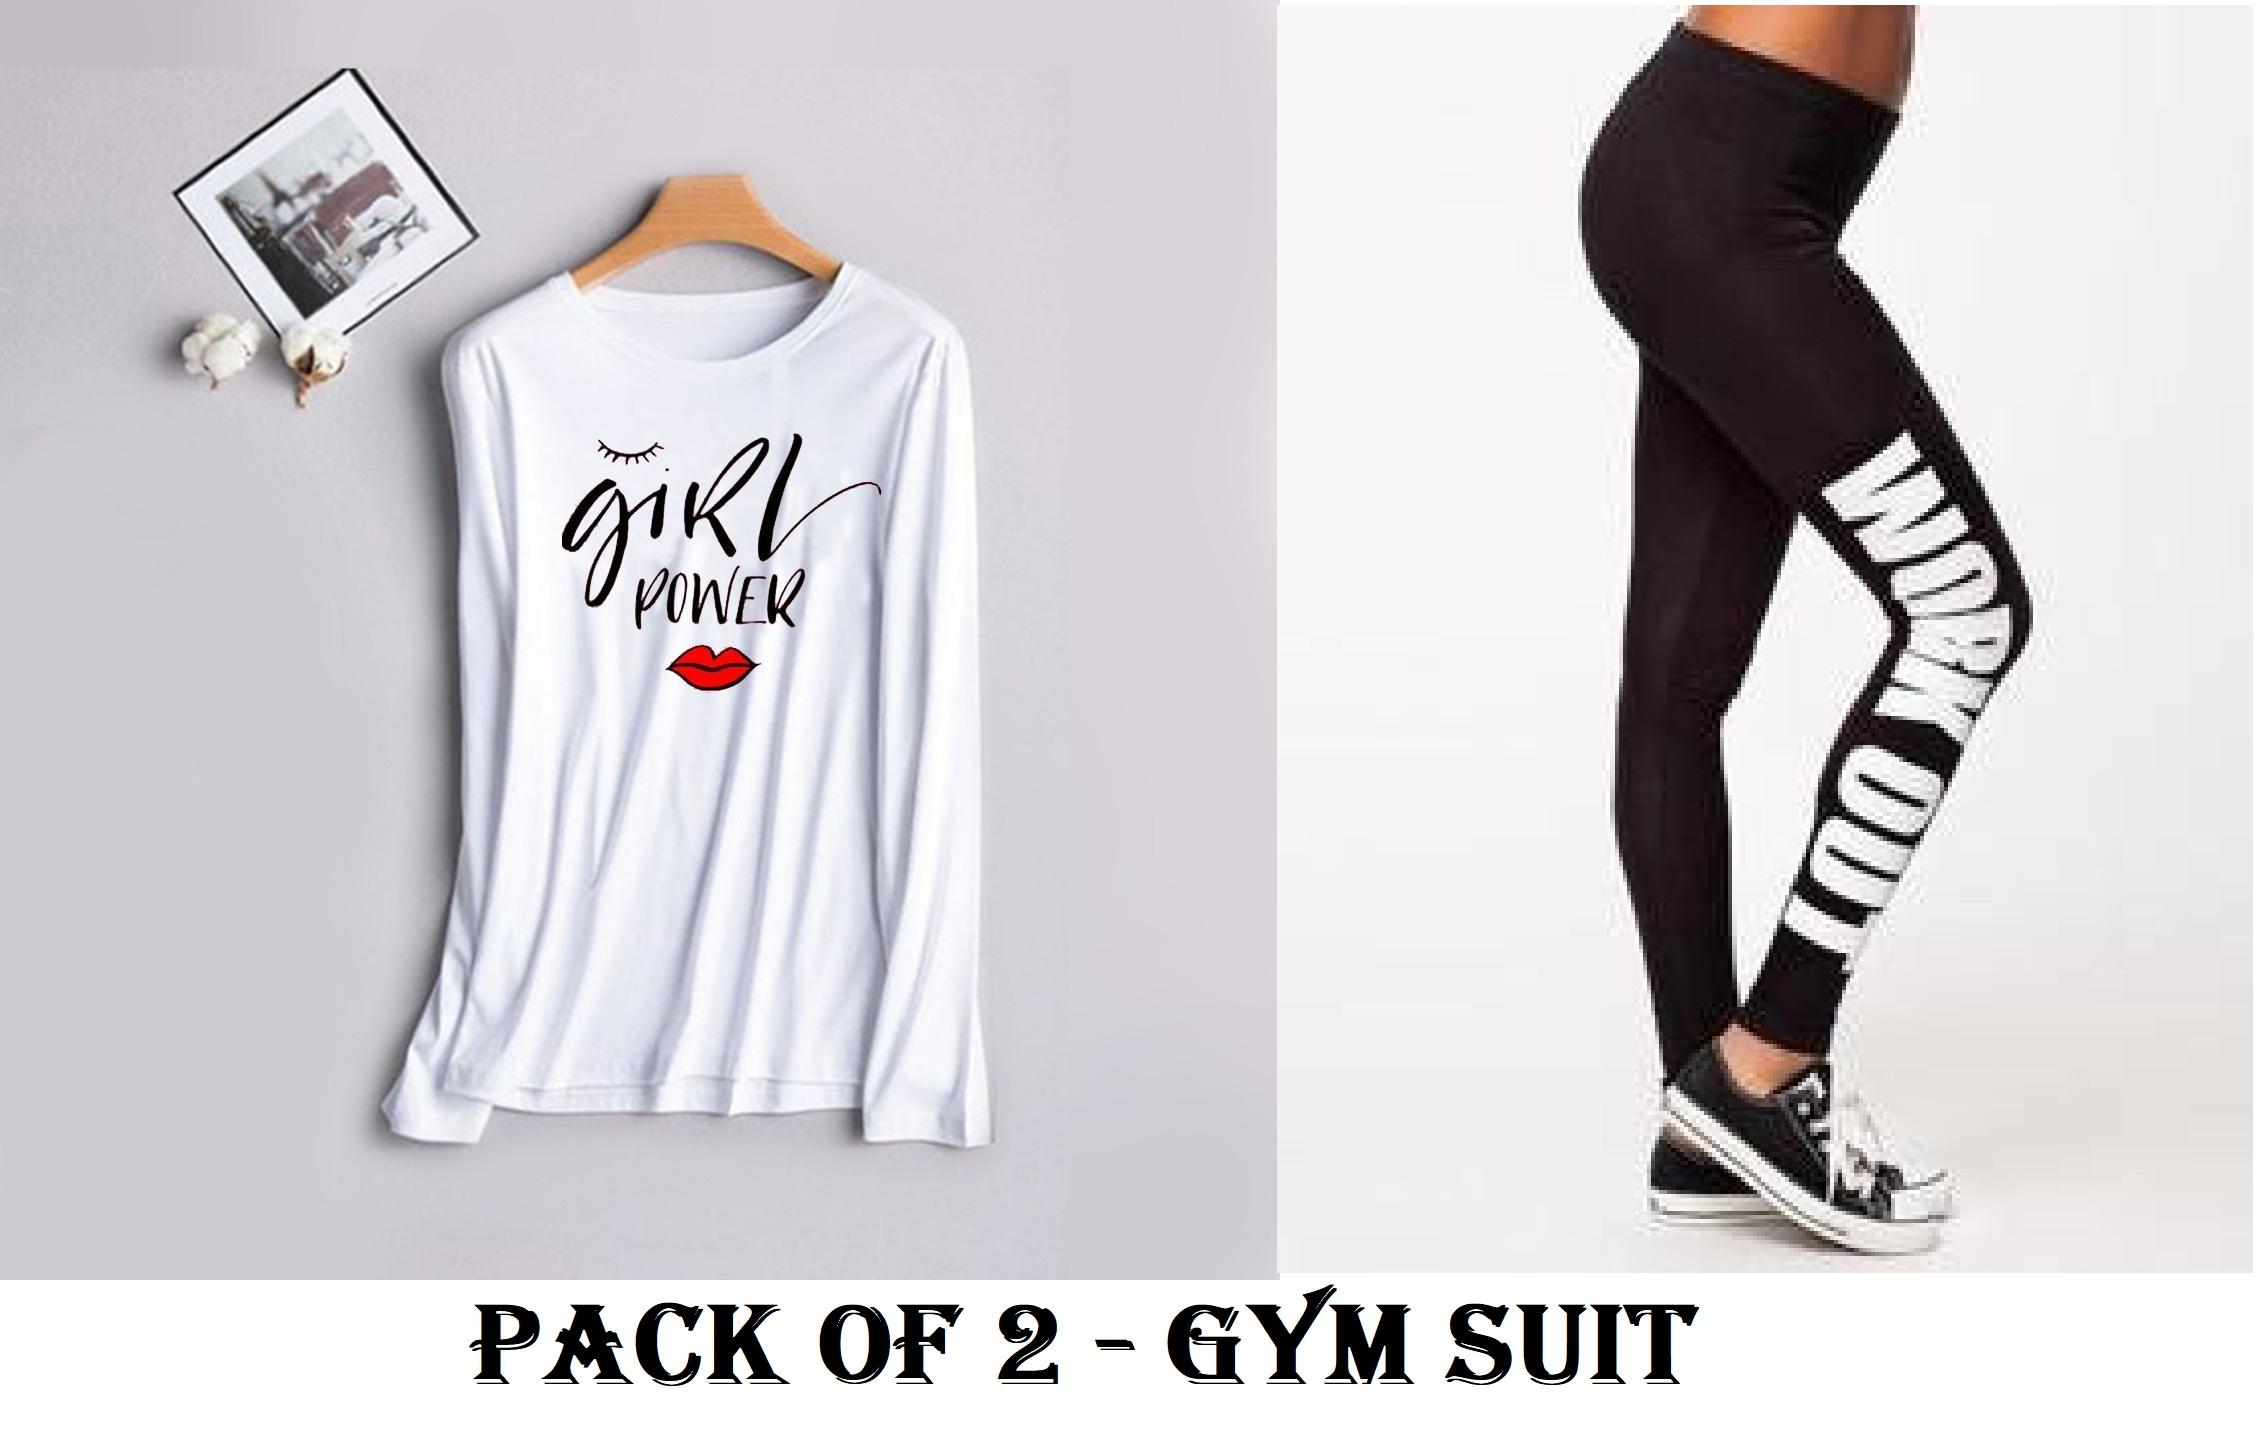 GIRL POWER Track Fitness Jogging Training Gym Suit for Women